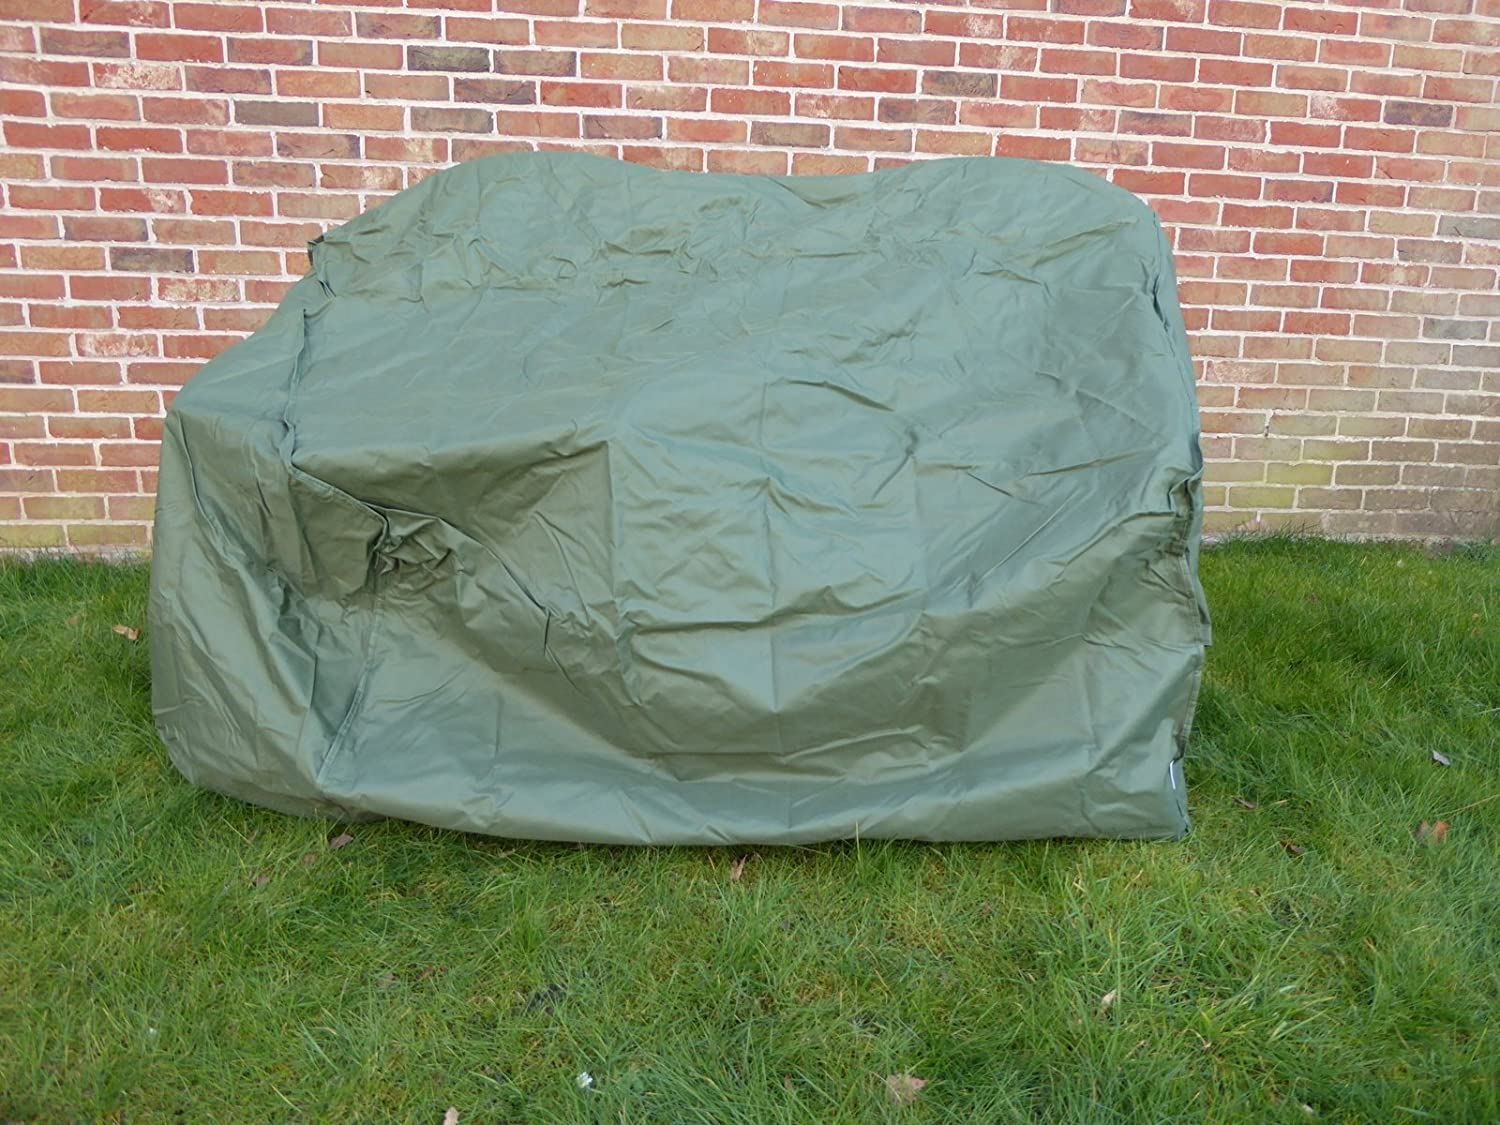 UK-Gardens Weather Proof Heavy Duty Companion Seat Cover - Water Proof Protective Cover for Garden Furniture - 5 Year Guarantee